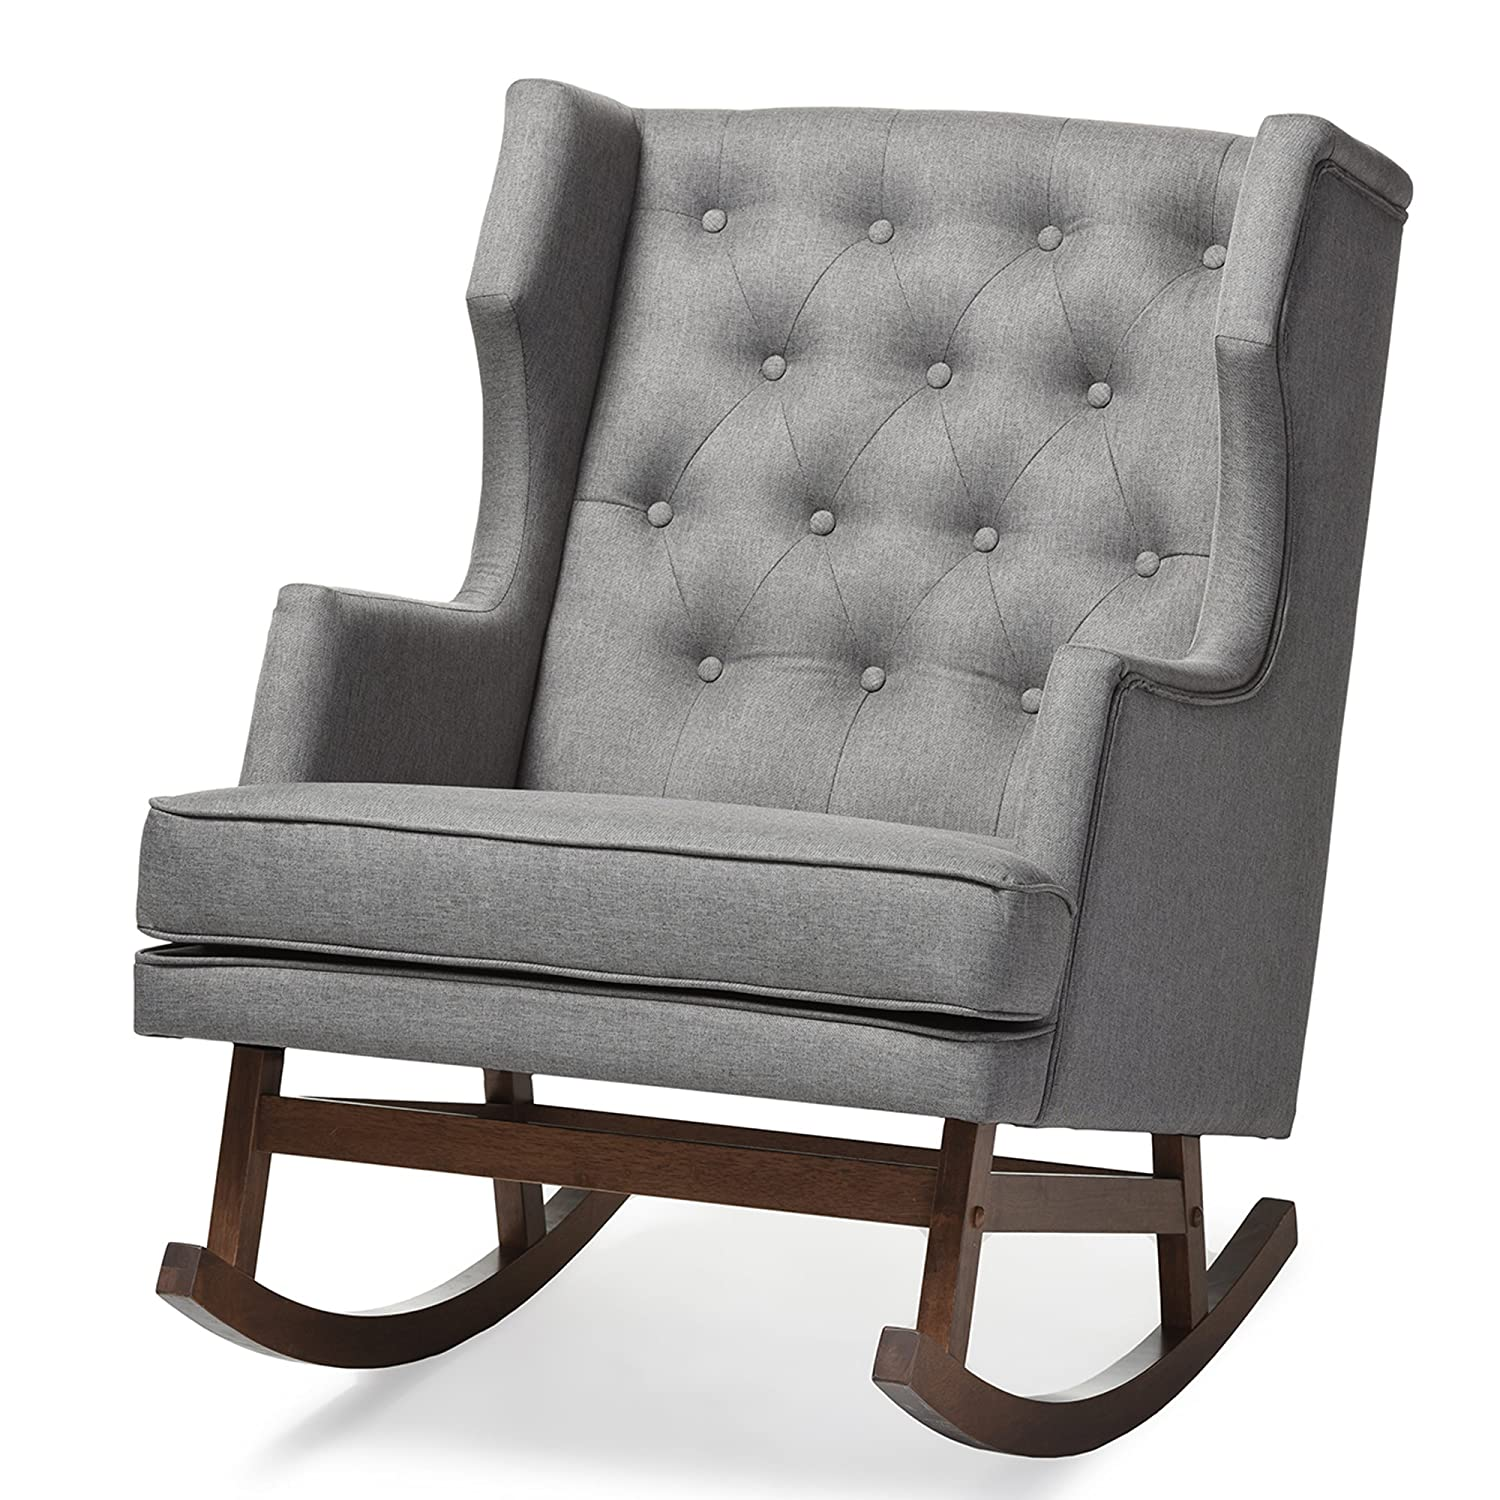 Amazon.com: Baxton Studio Iona Mid Century Retro Modern Fabric Upholstered  Button Tufted Wingback Rocking Chair, Grey: Kitchen U0026 Dining